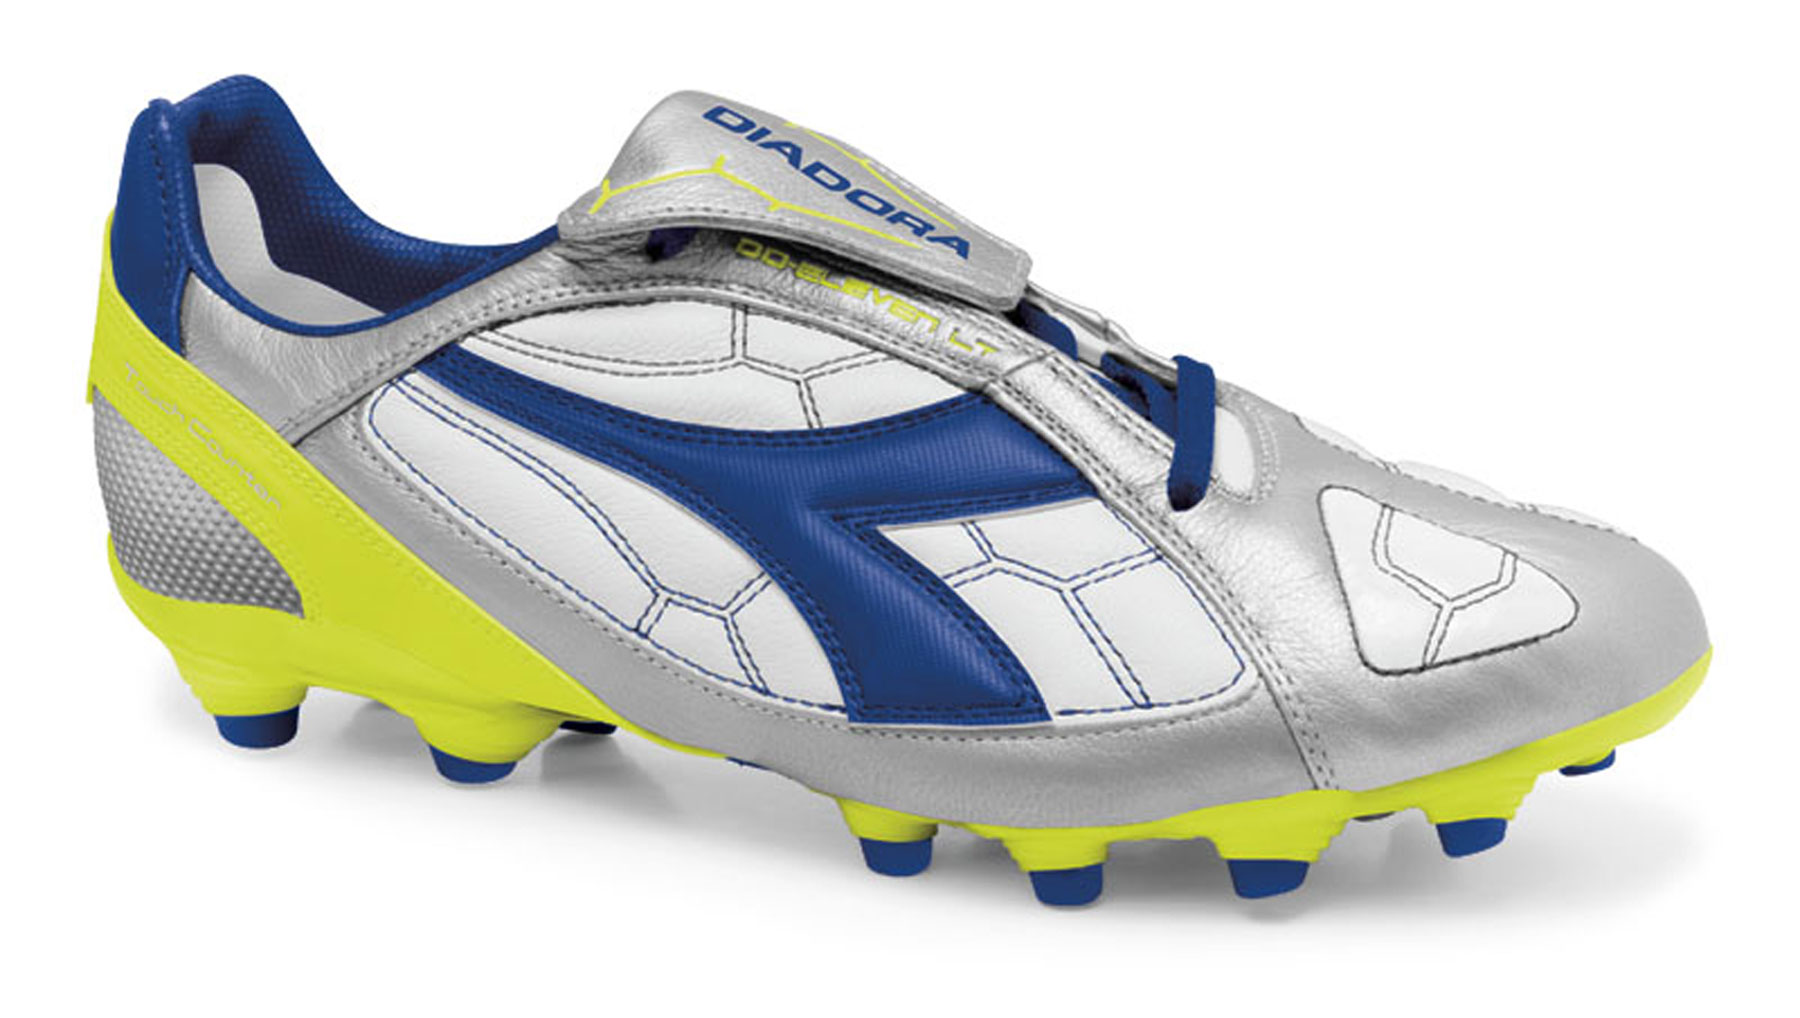 Diadora DD11 soccer cleats in silver by Code Four Athletics